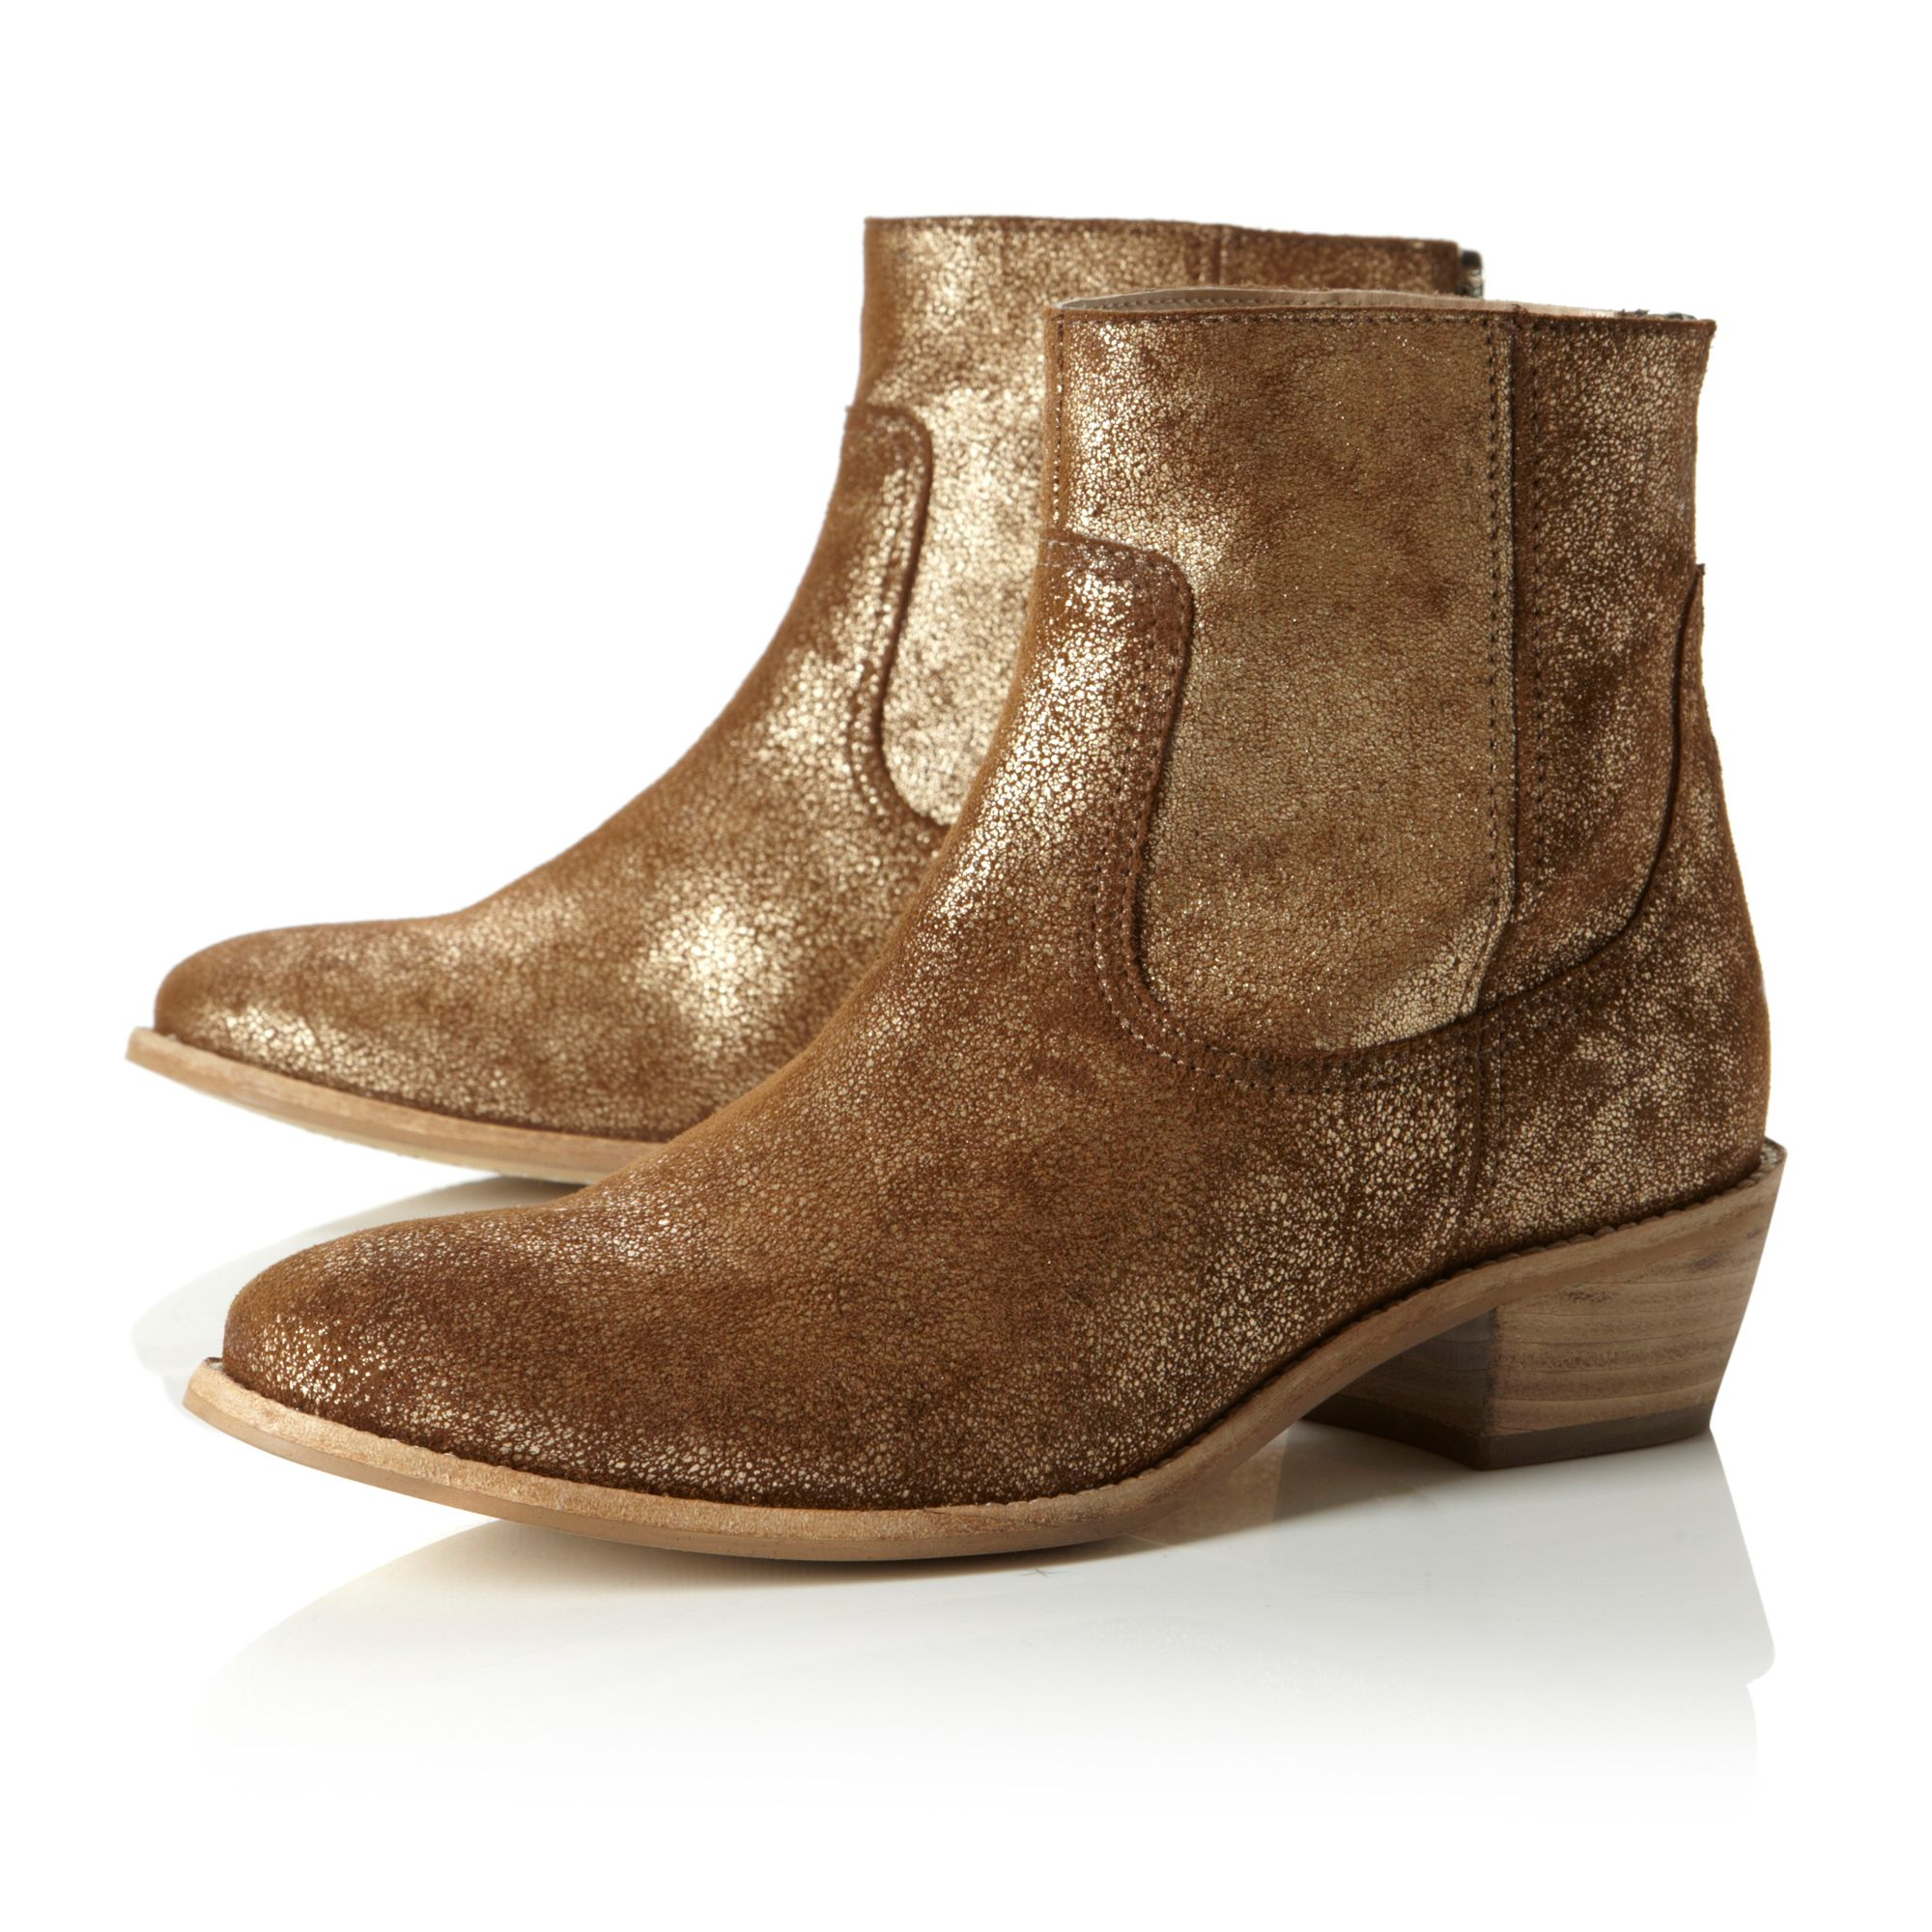 Picker Distressed Metallic Boots